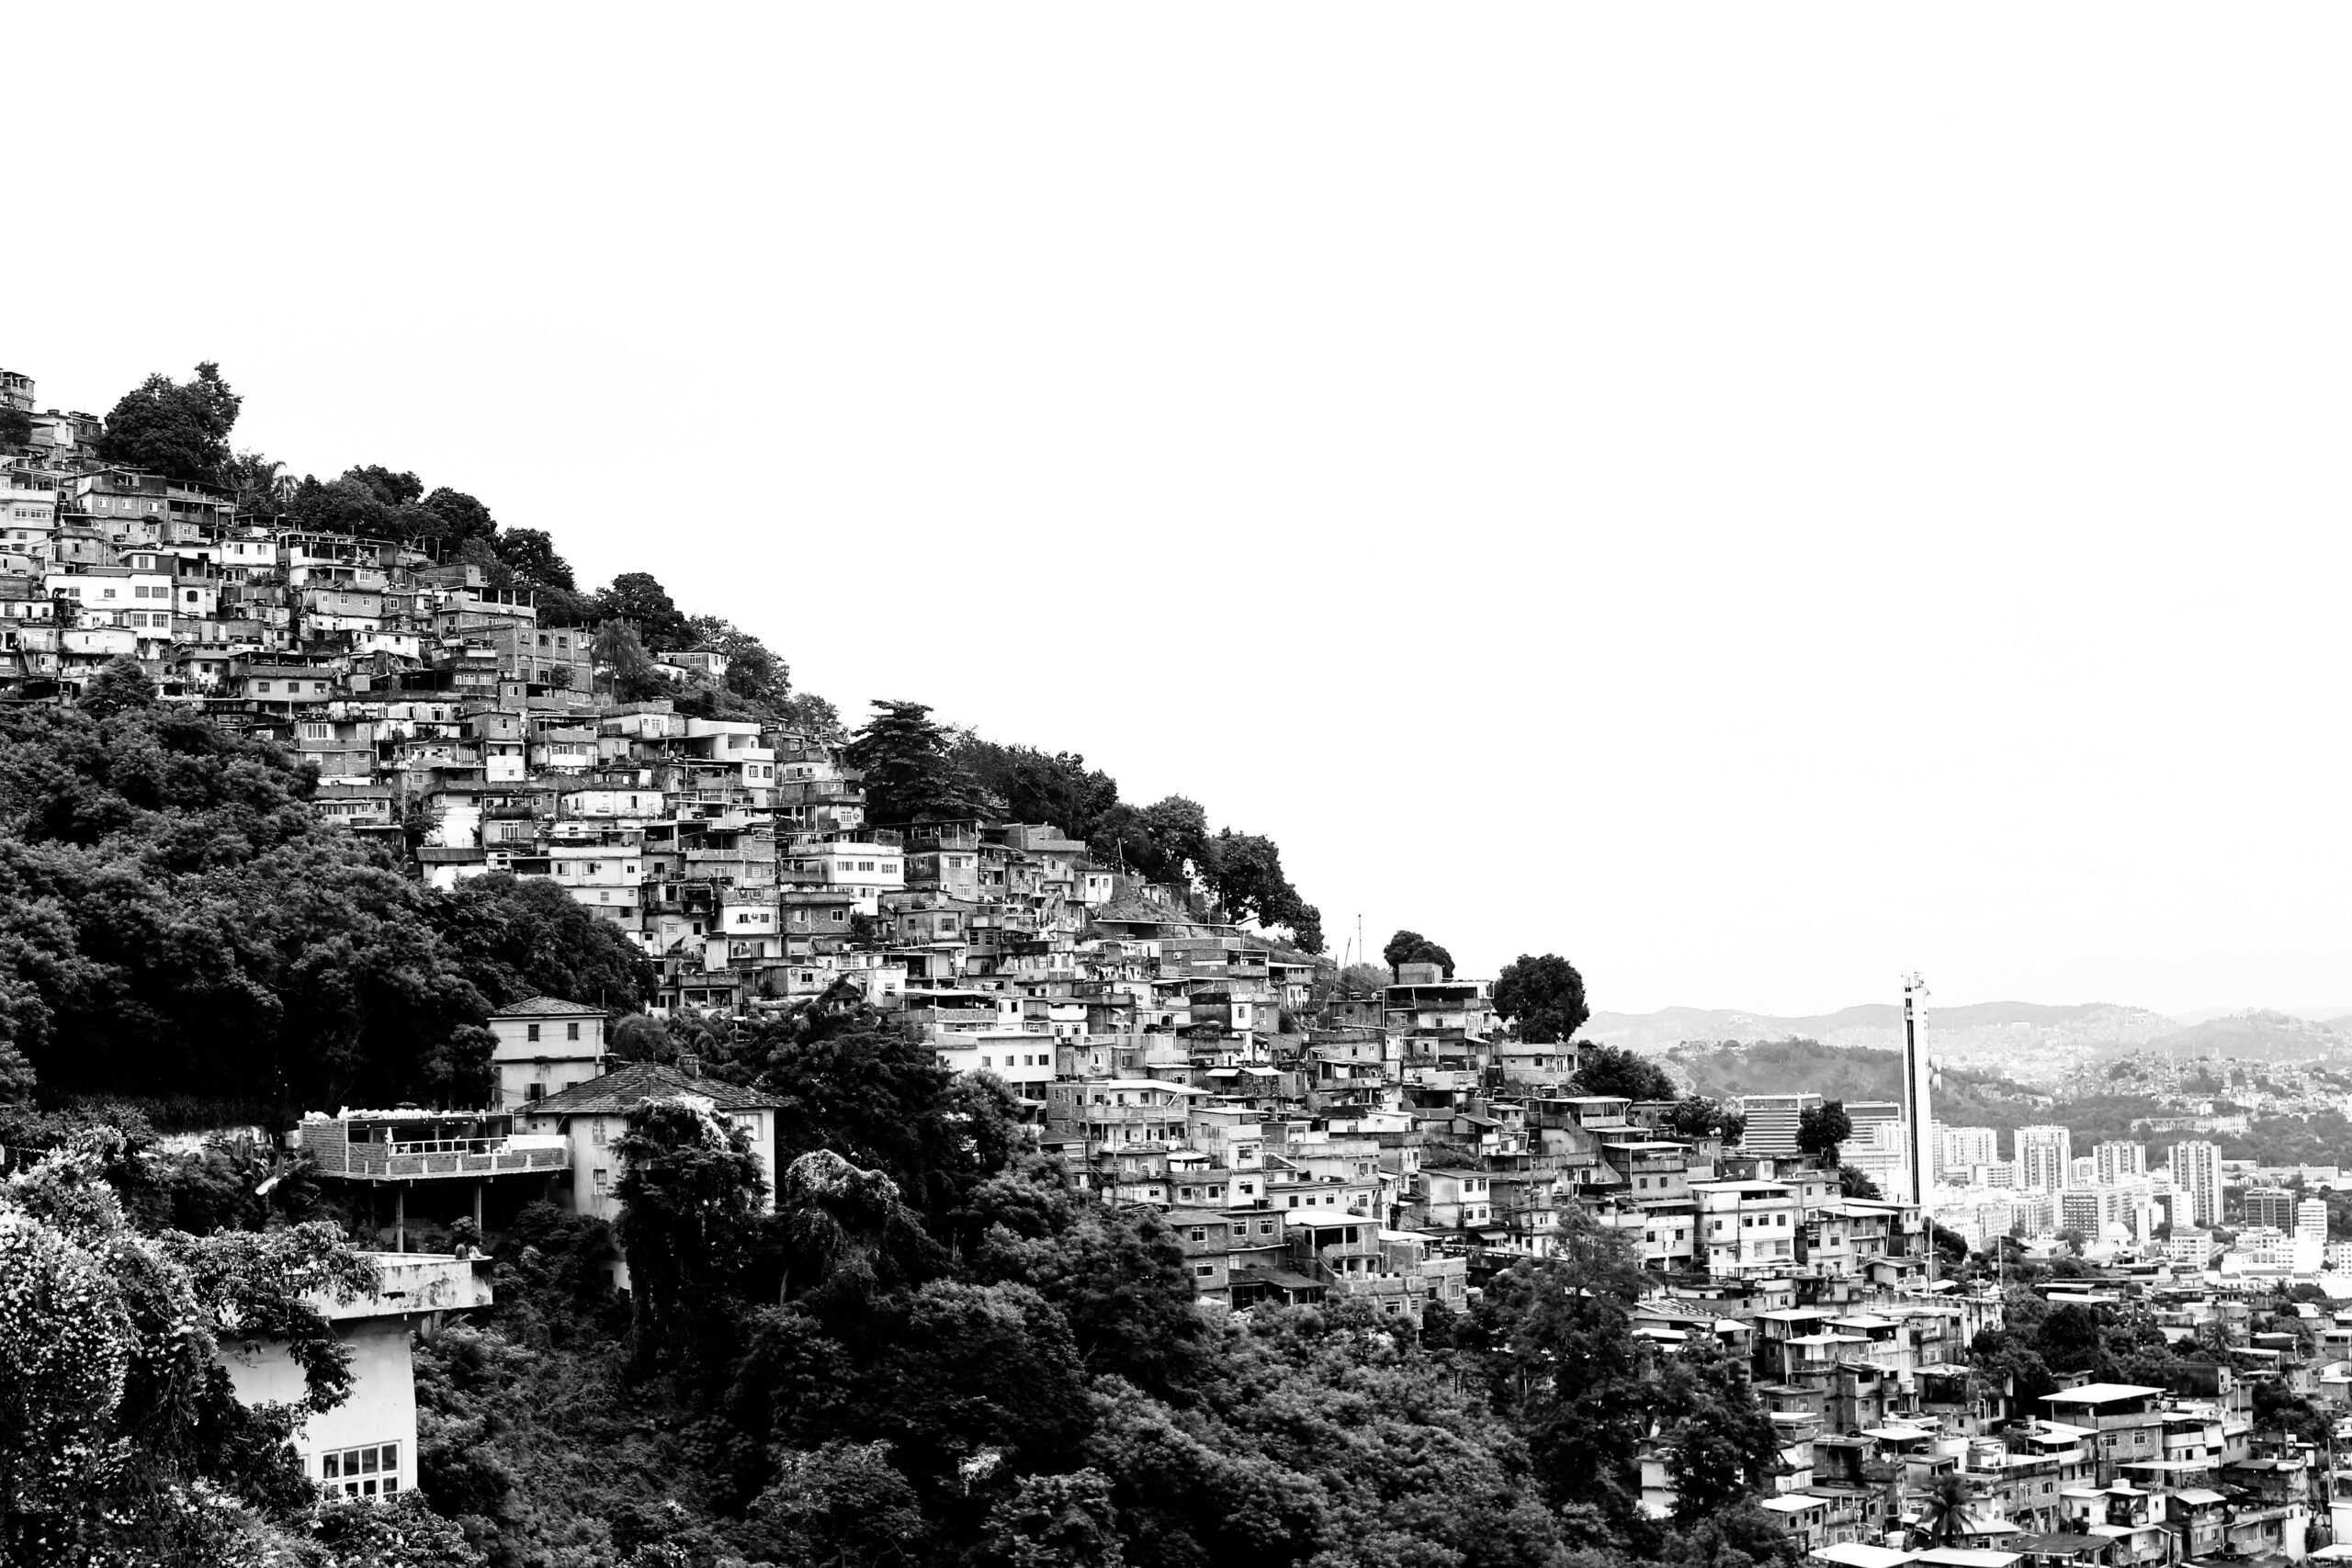 grayscale photo of houses on hill